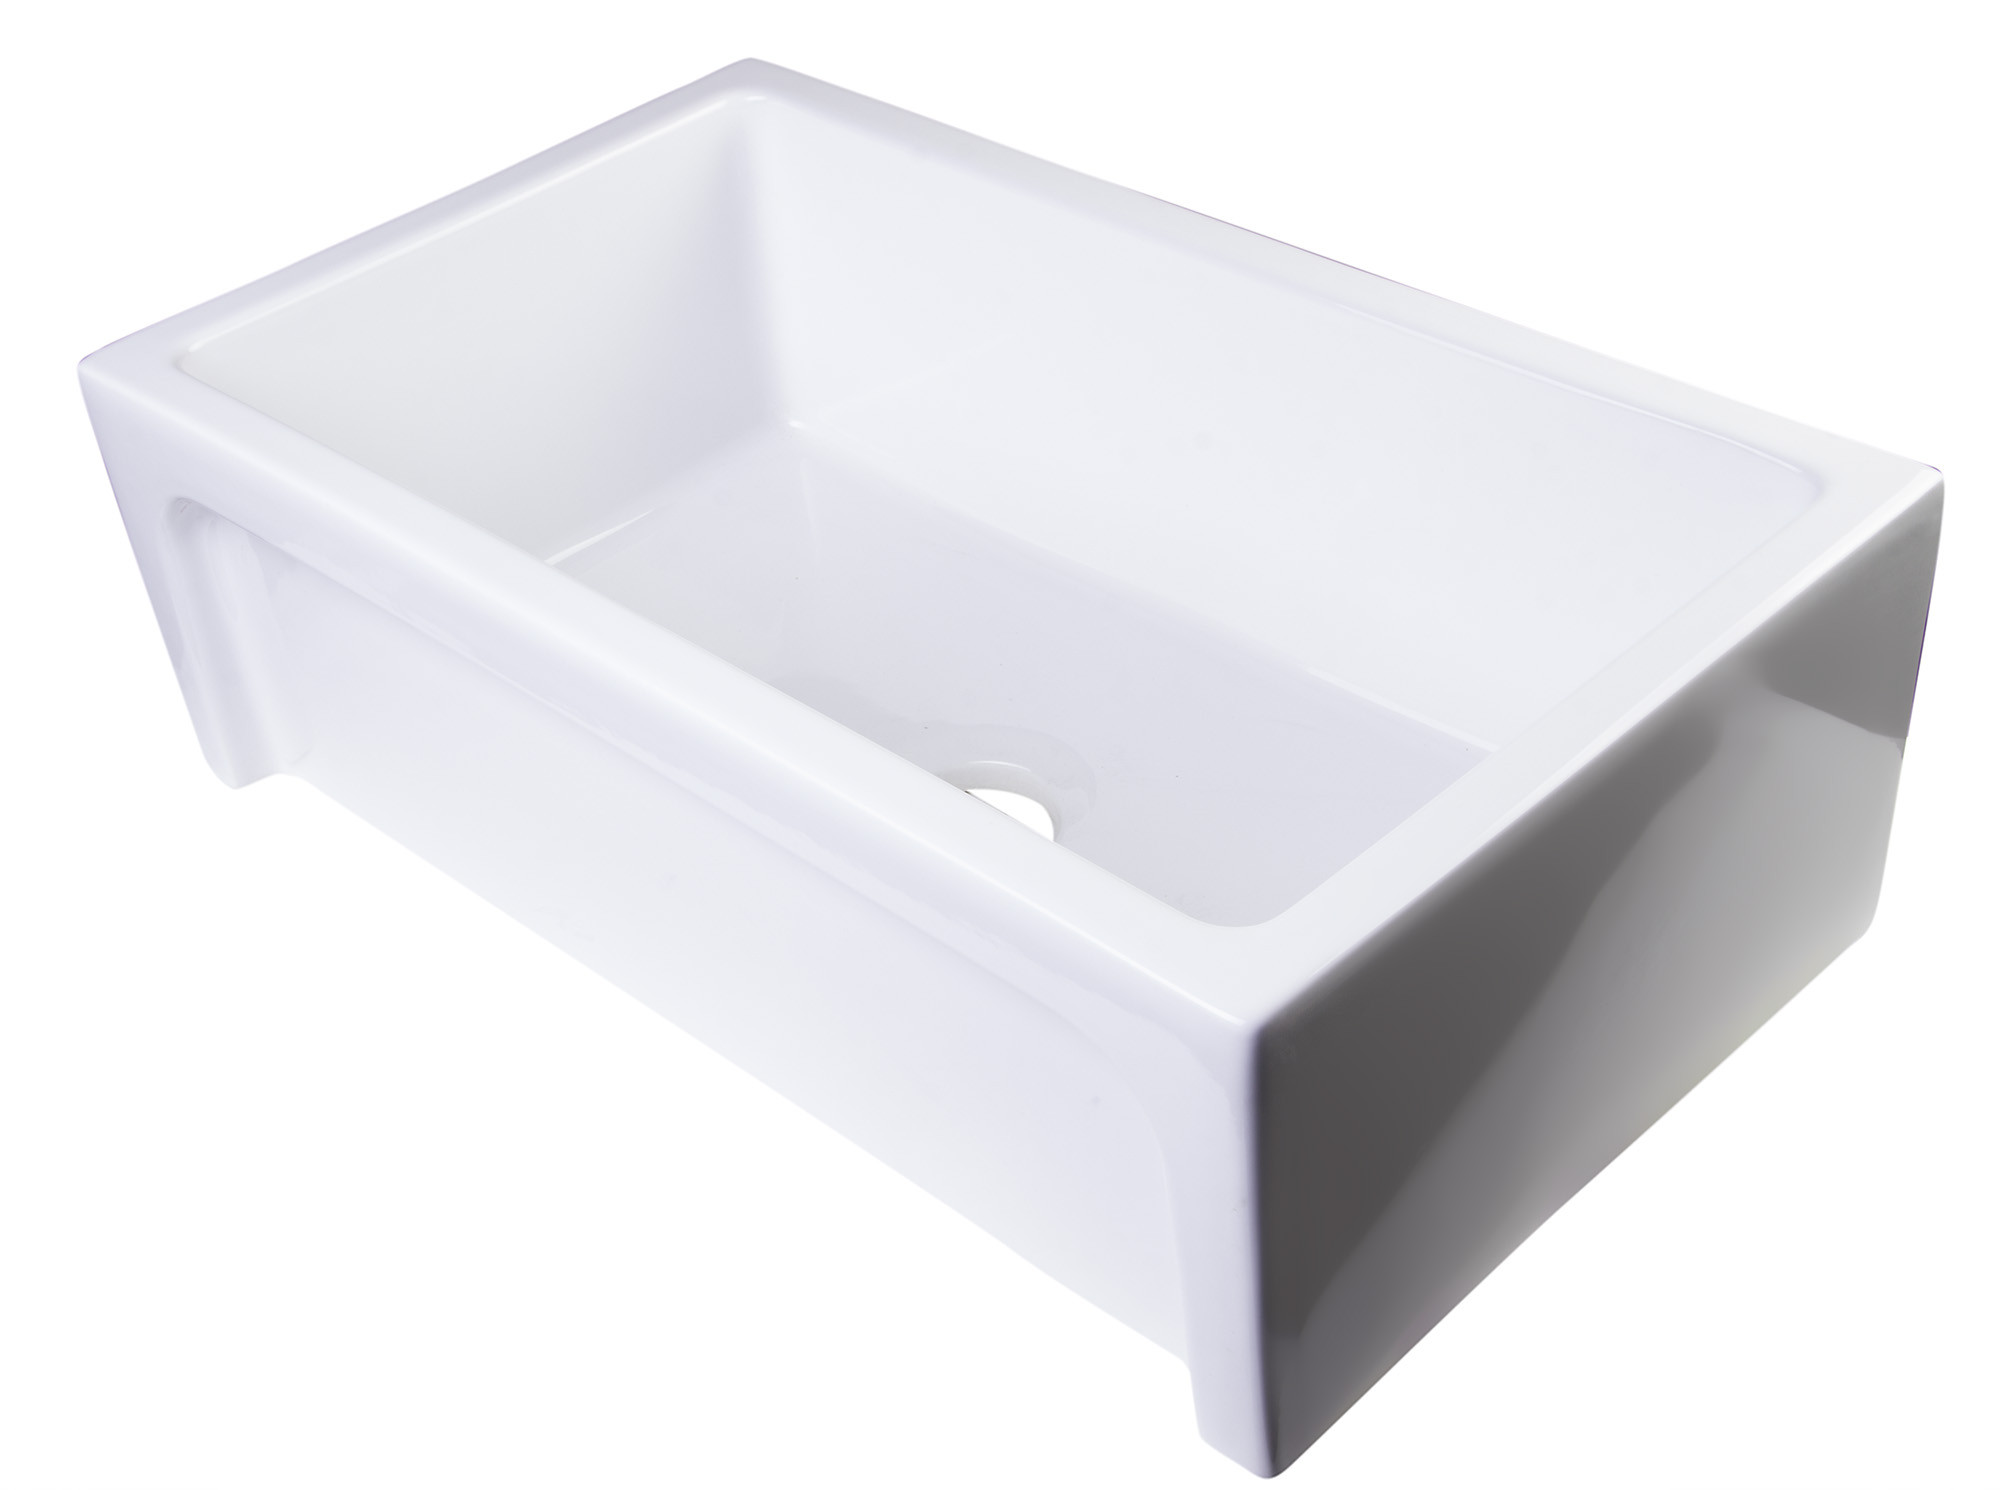 ALFI brand AB3018ARCH-W White Arched Apron Thick Wall Fireclay Farm Sink